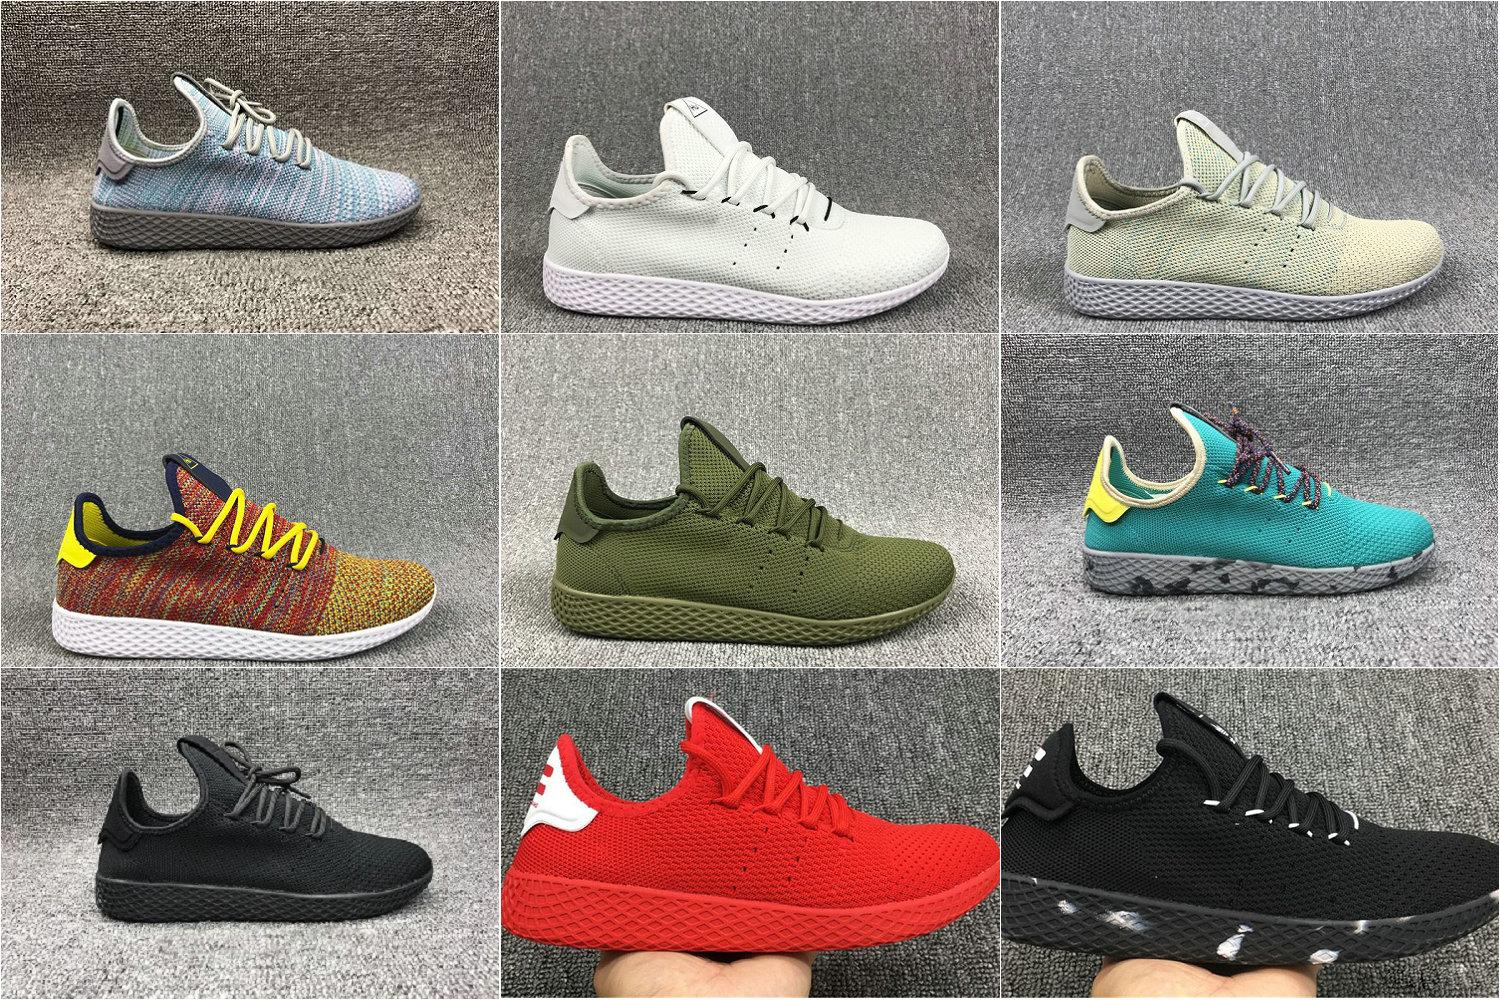 buy popular b7f27 99205 Pharrell Williams X Stan Smith Running Shoes for Men Women Tennis HU  Primeknit Breathable Runner Luxury Brand Designer Sports Sneakers Pharrell  Williams ...